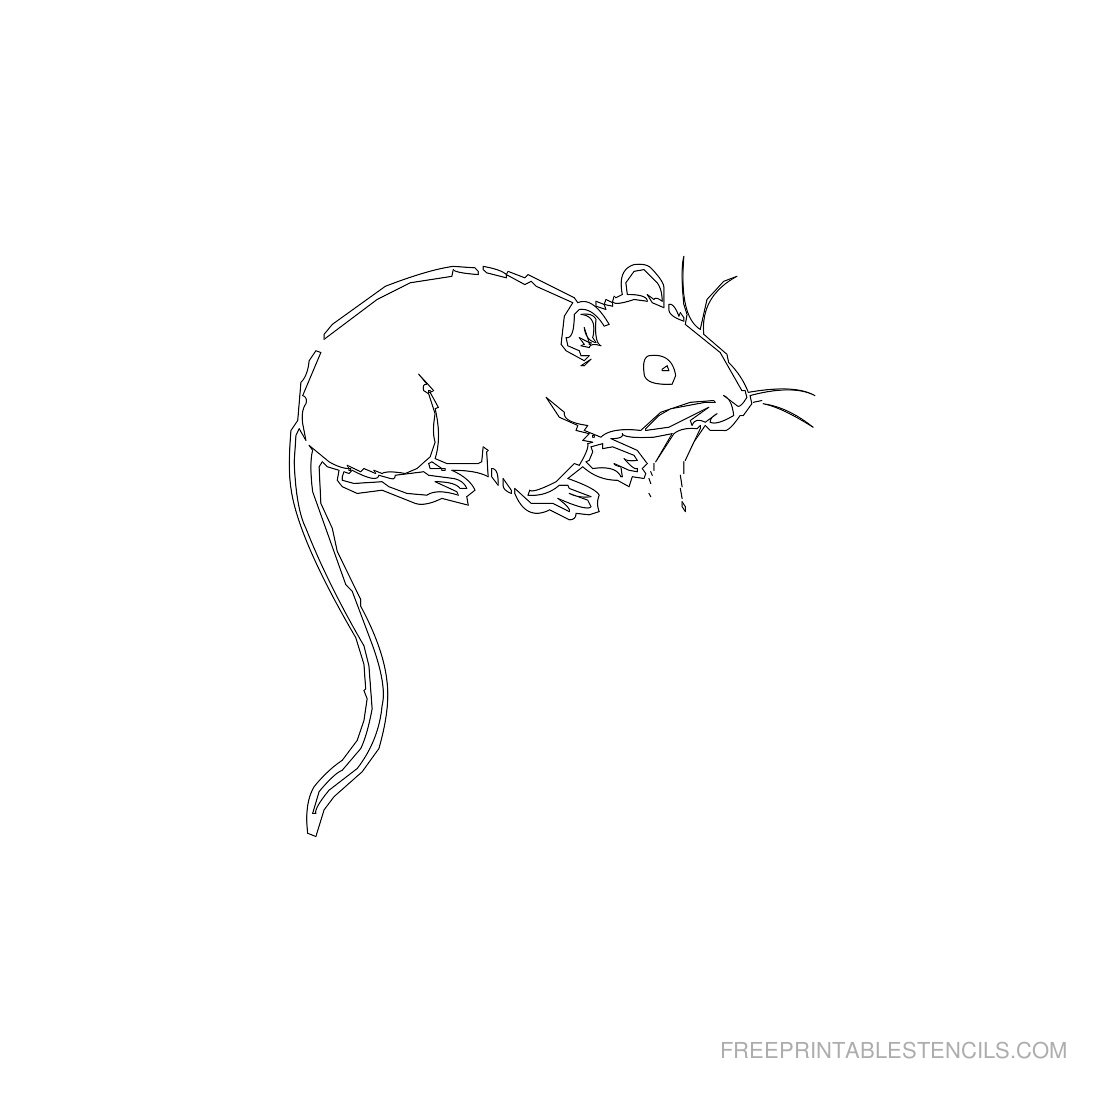 Free Printable Animal Stencil Mouse